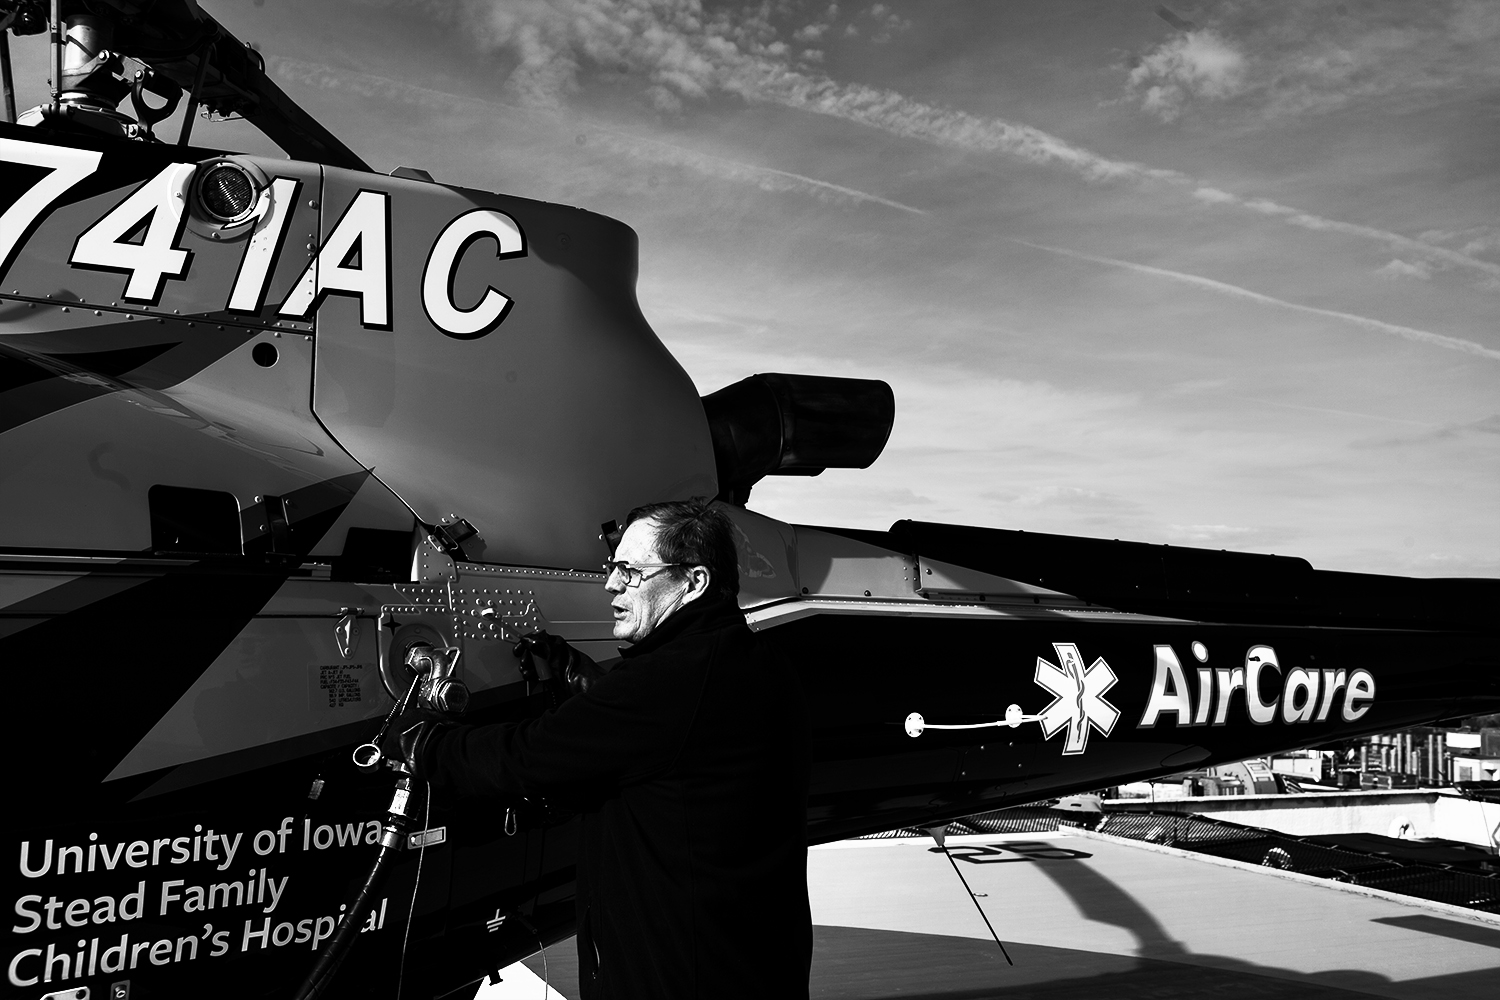 AirCare+lead+pilot+Tim+Whaylen+fuels+up+the+Aircare+helicoptor+after+a+flight+on+April+1%2C+2019+in+Iowa+City%2C+Iowa.+